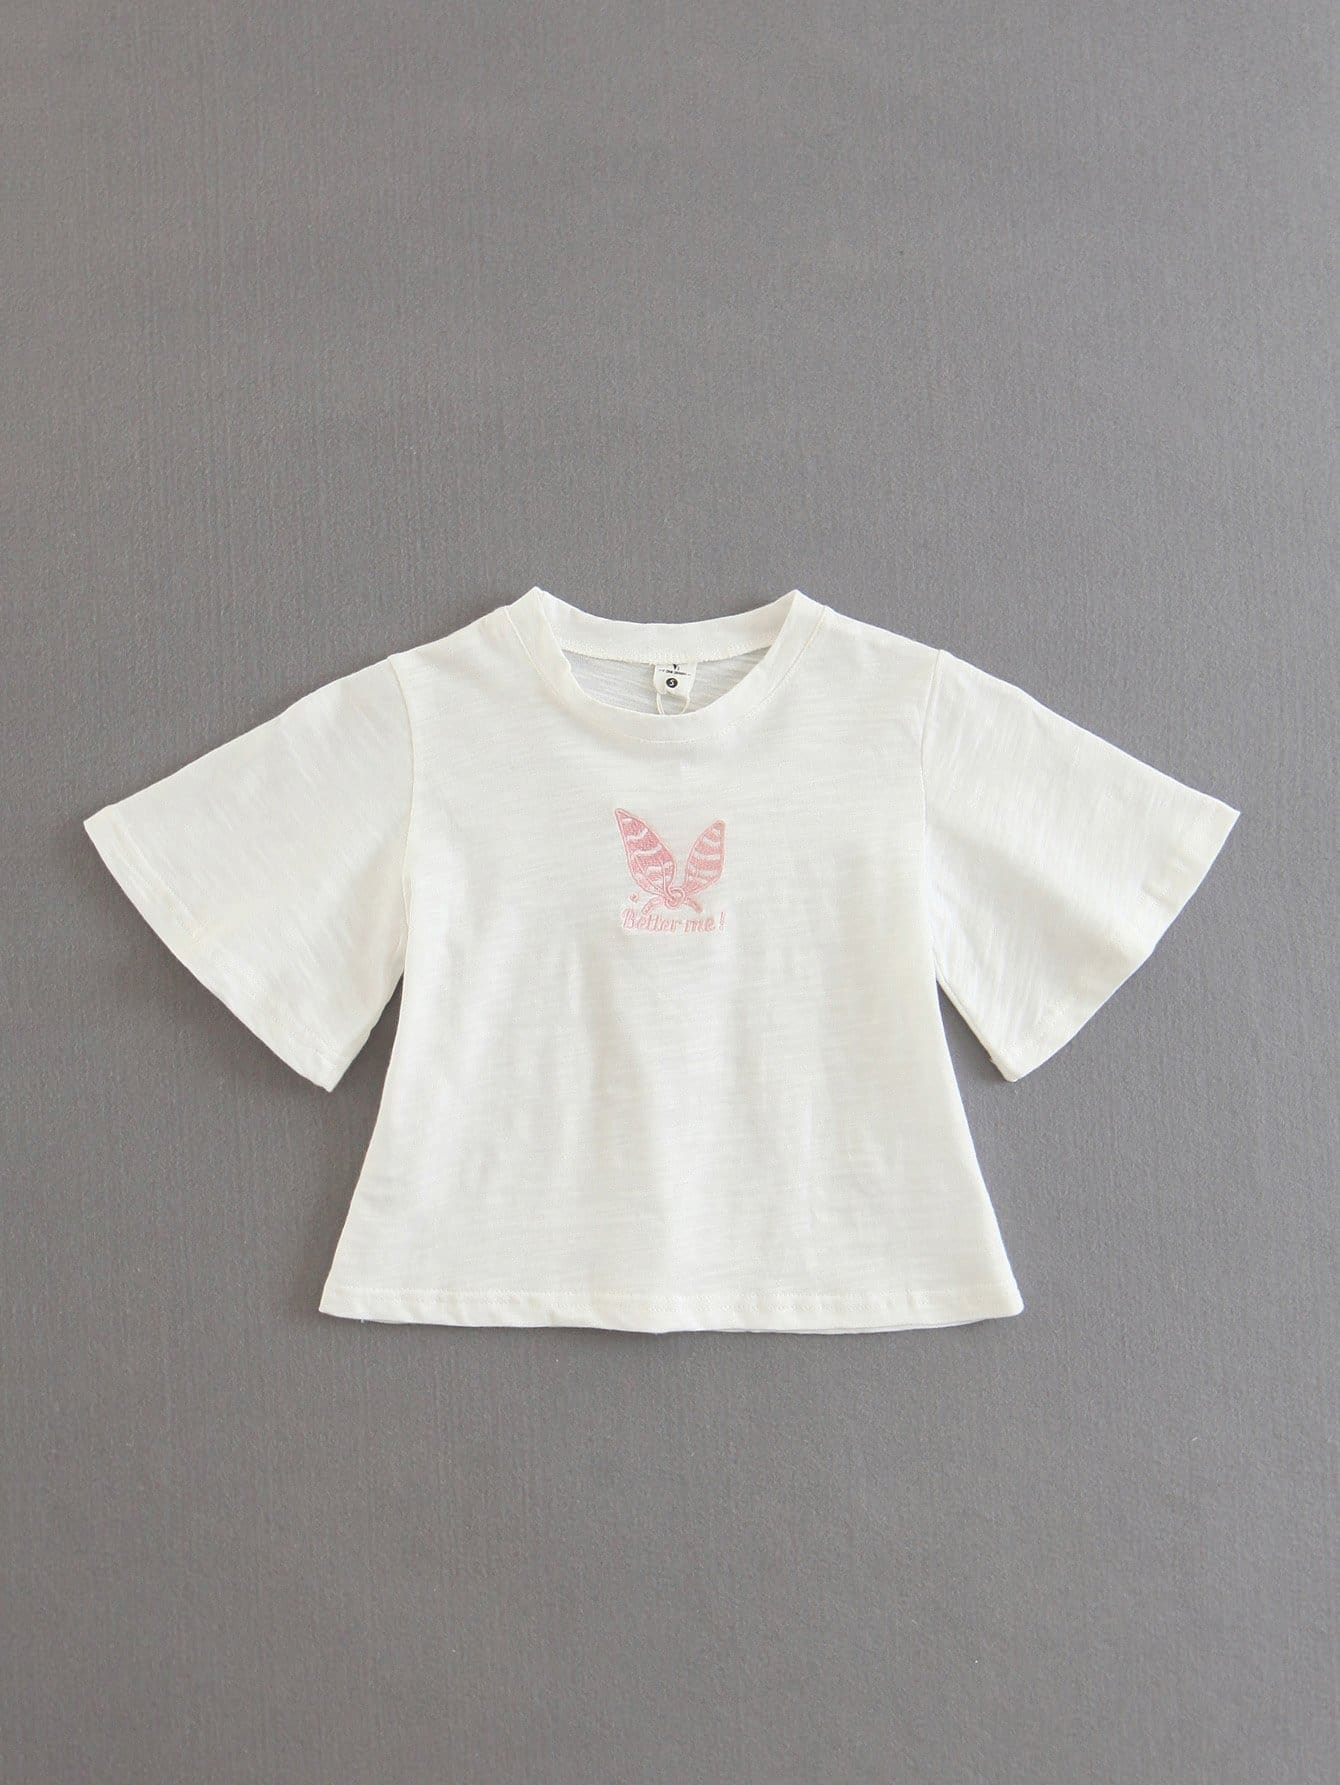 Butterfly Embroidered Tee butterfly embroidered tee